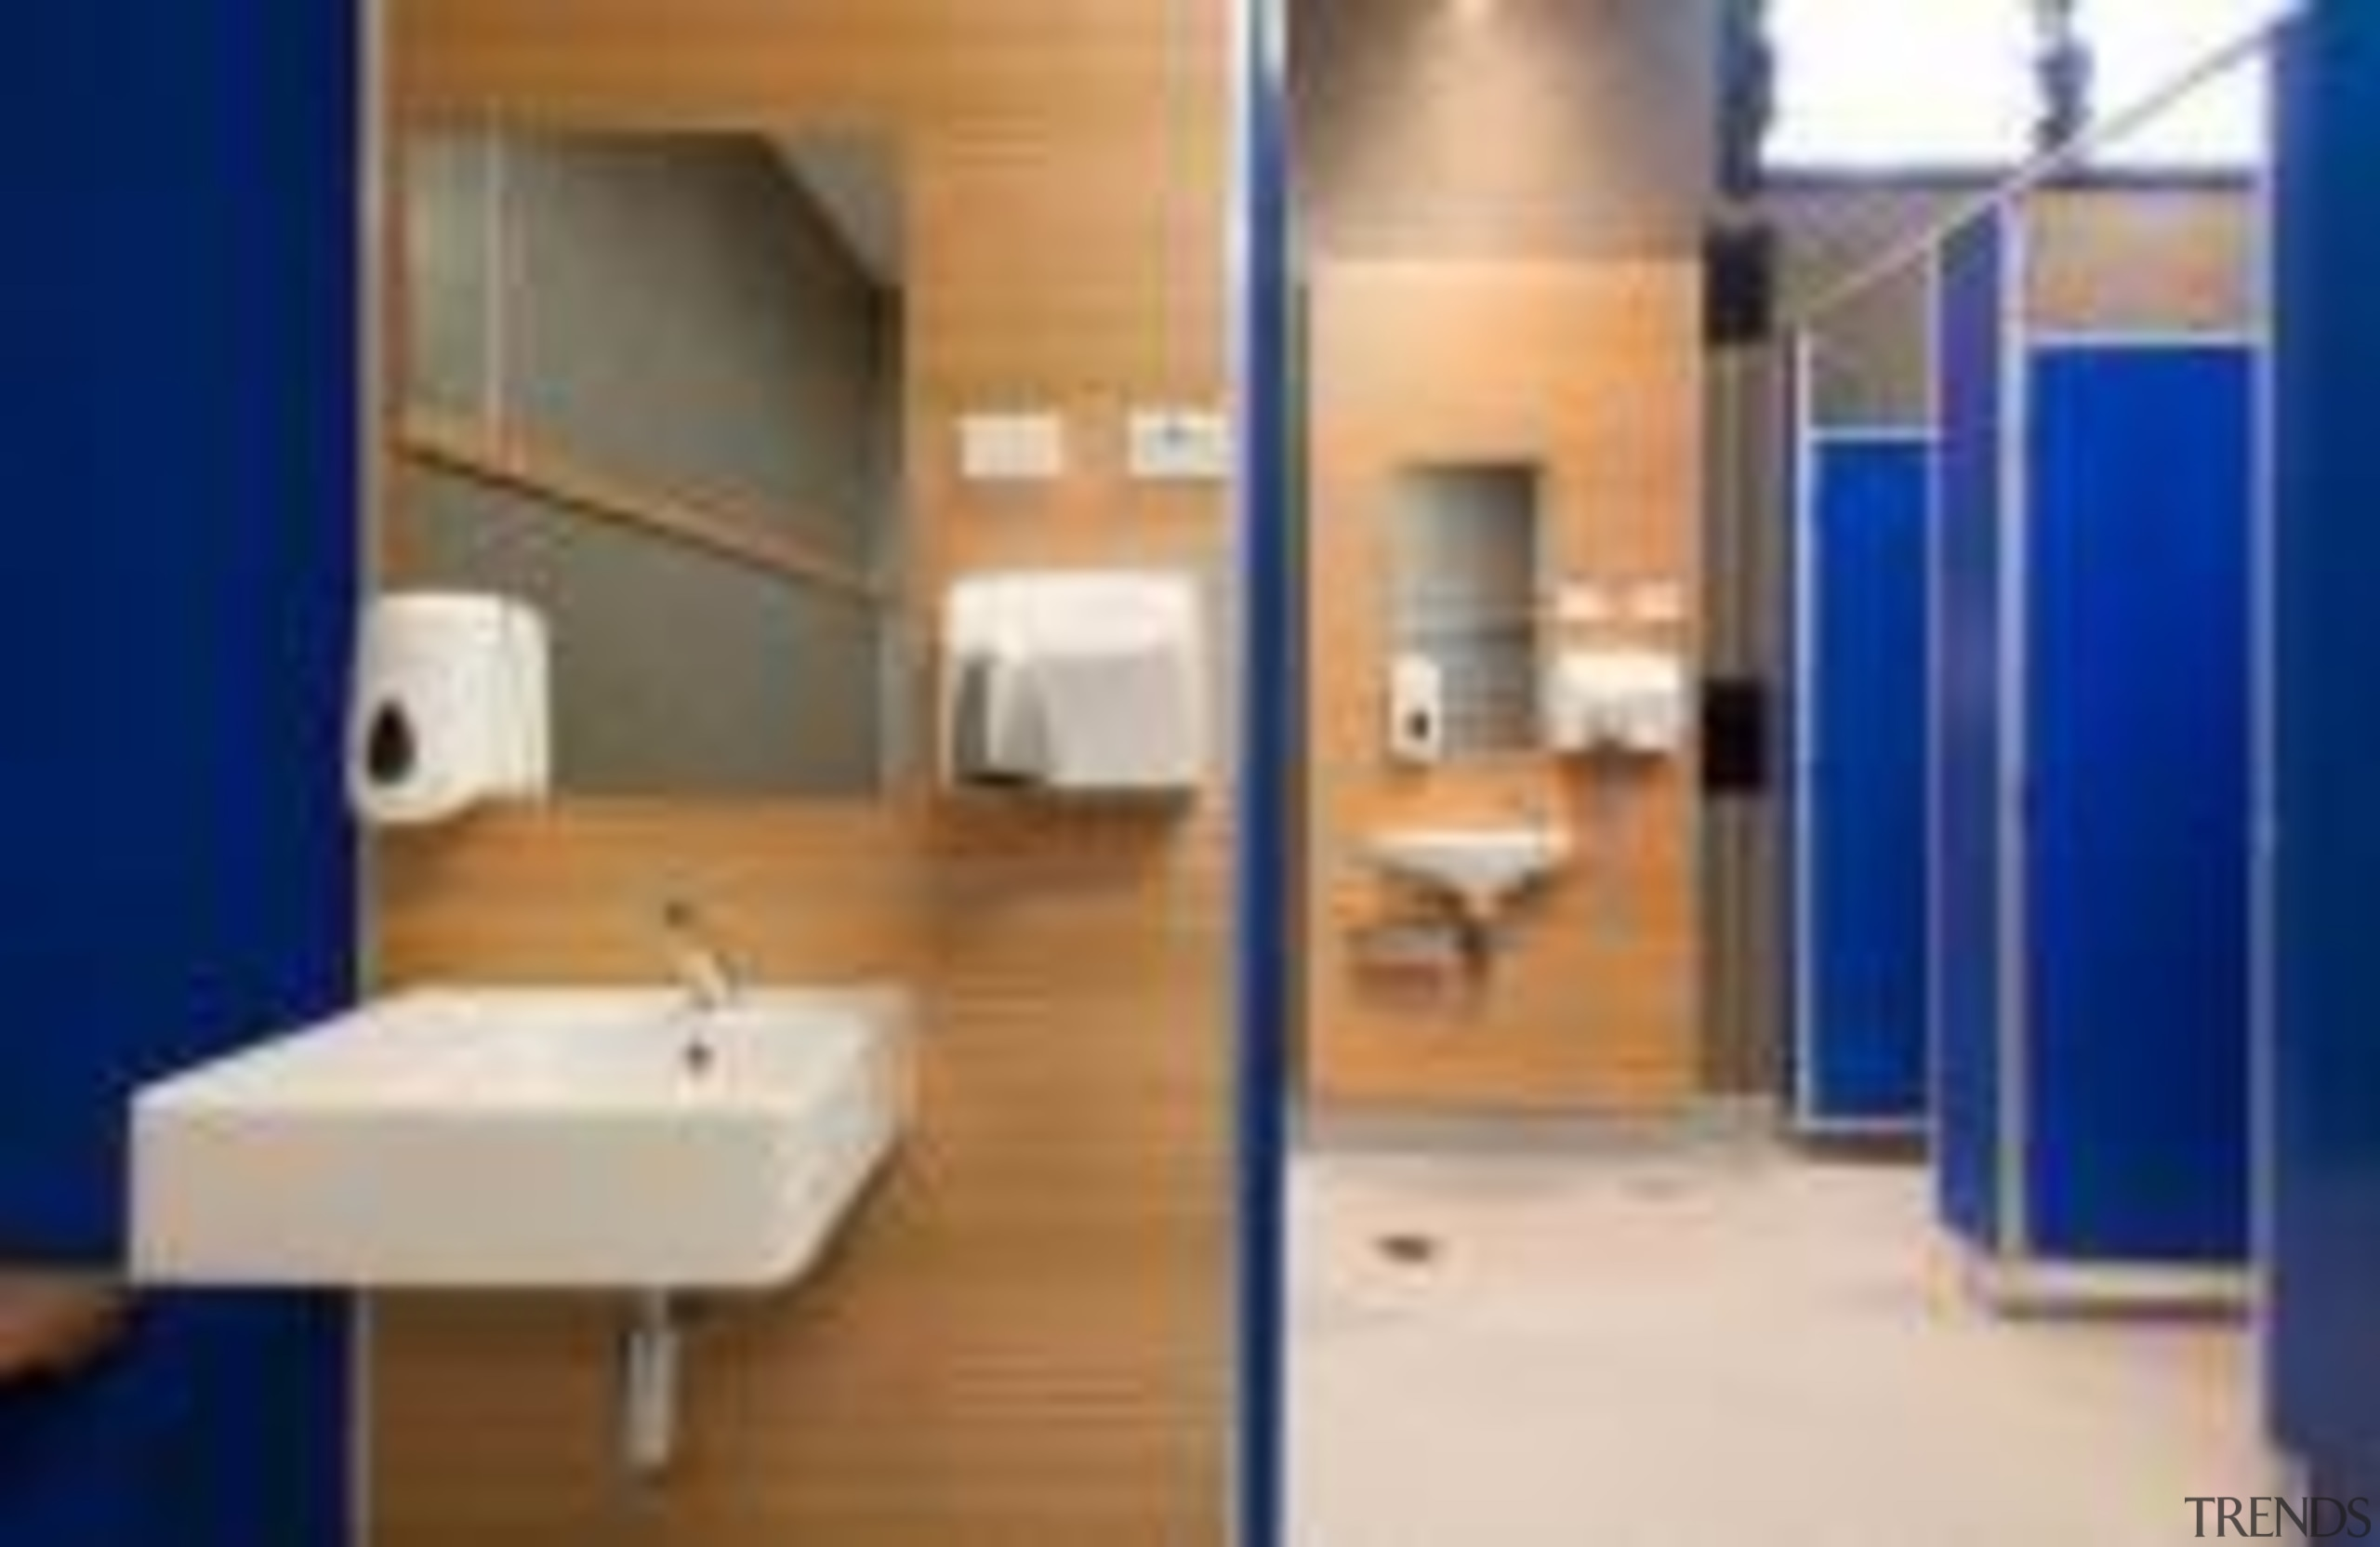 Changing room at St Mary's College Designed by bathroom, floor, interior design, real estate, room, blue, gray